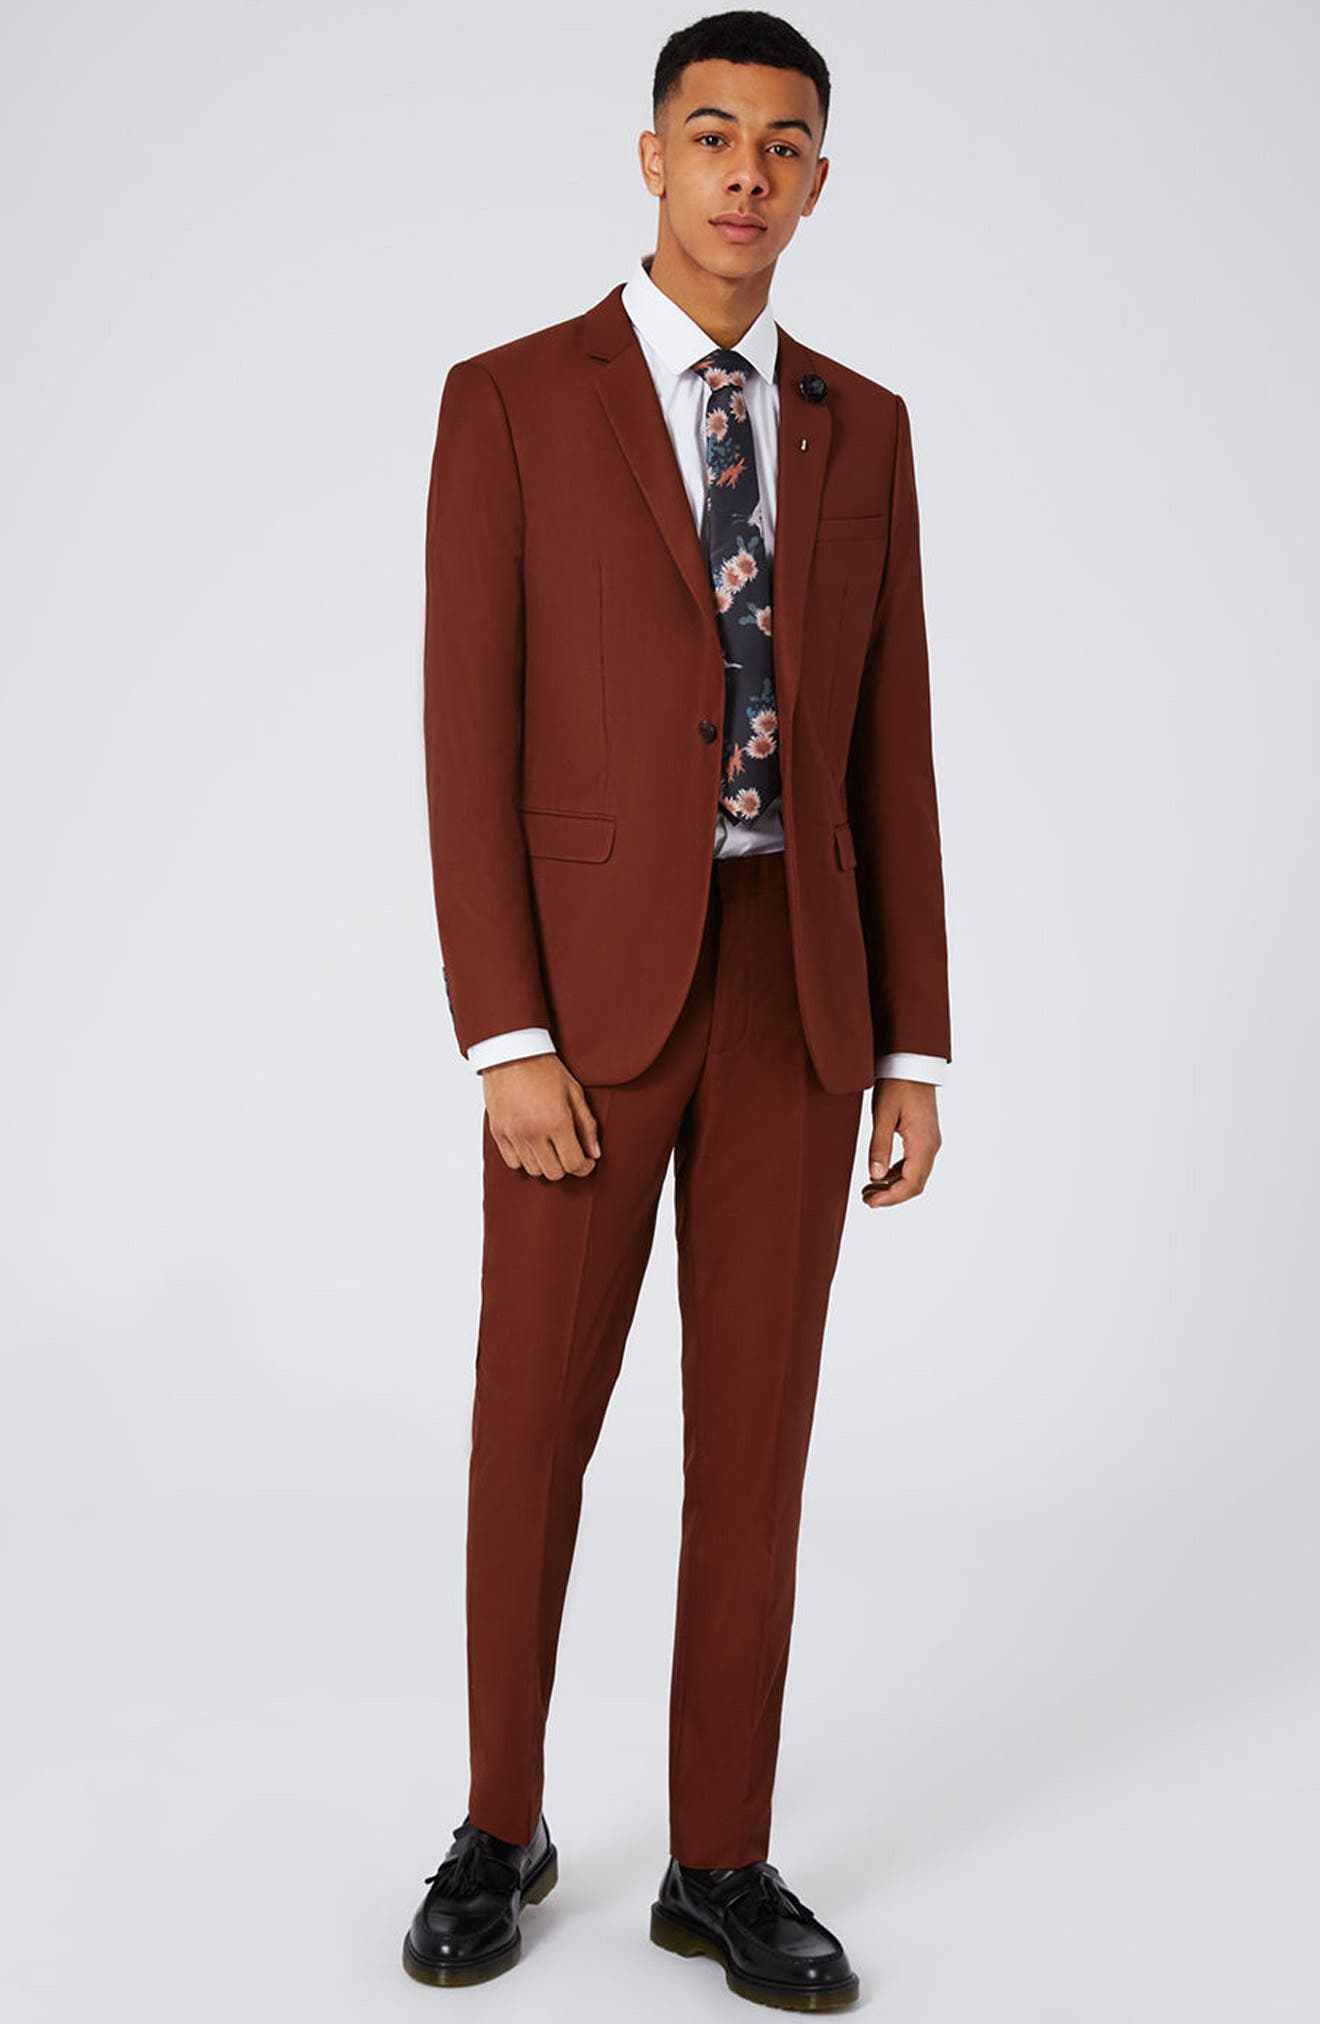 Men's Extra-Trim-Fit Suits & Sport Coats | Nordstrom